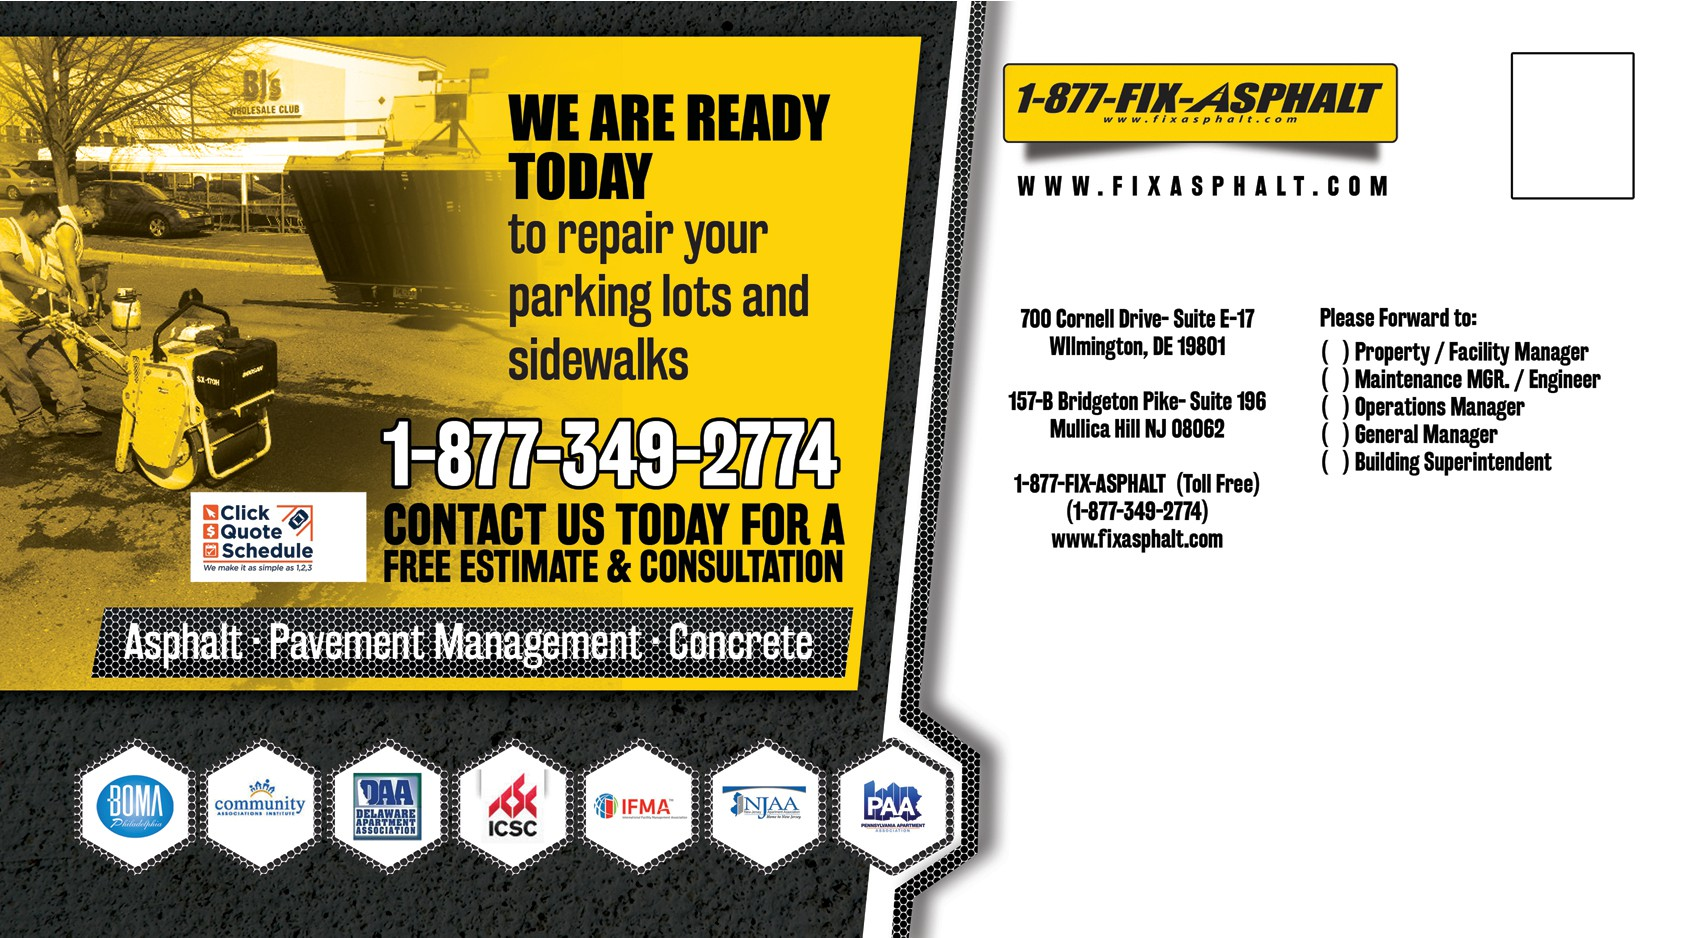 Post Card Design for an asphalt and concrete company